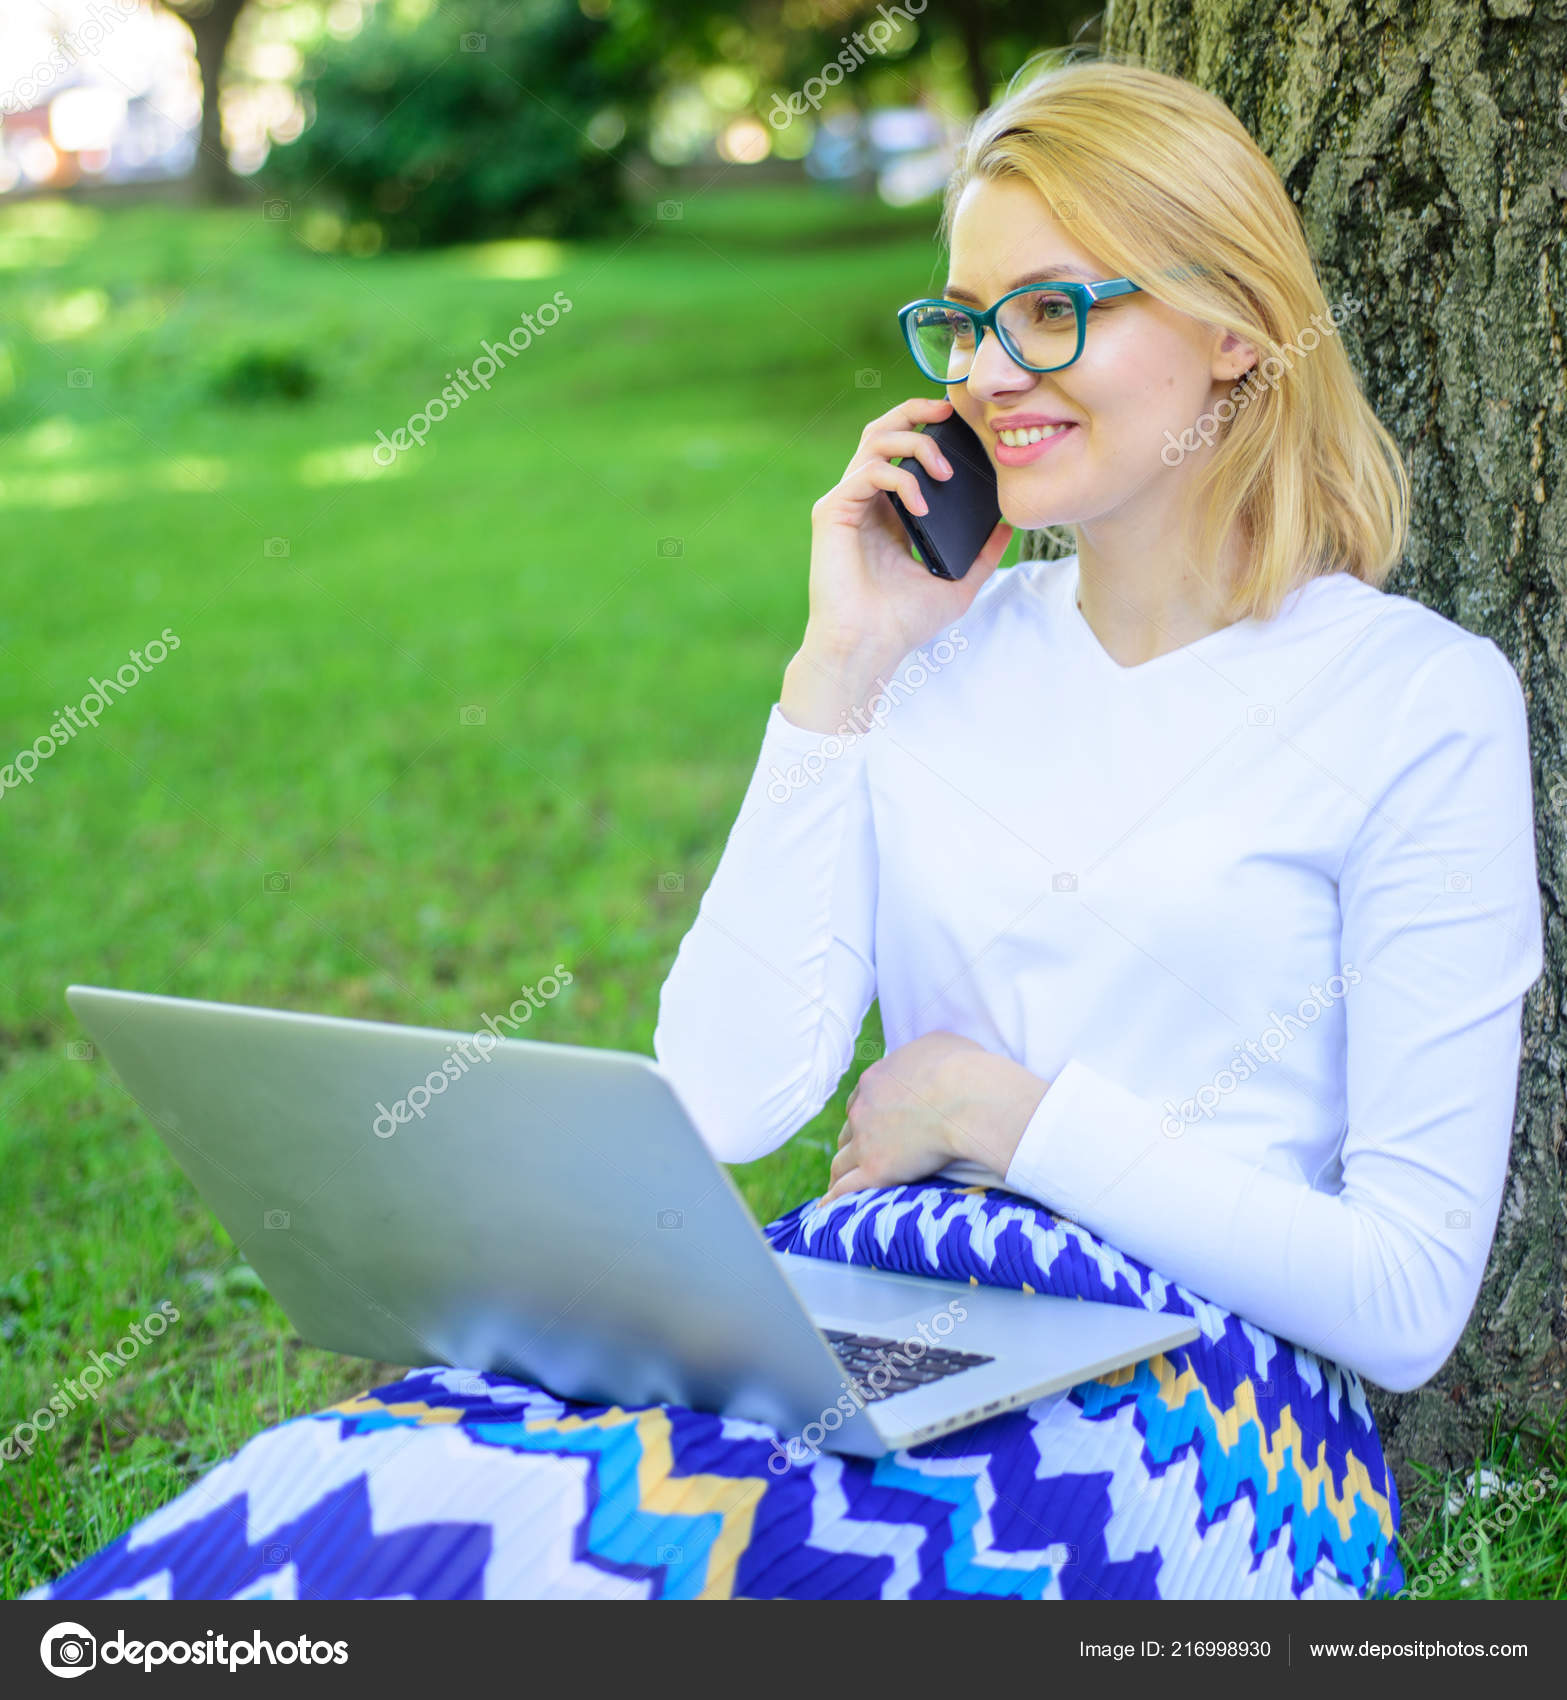 facae7b95 Buy clothes online. Girl sit grass with notebook. Woman with laptop in park  order item on phone. Girl takes advantage of online shopping.